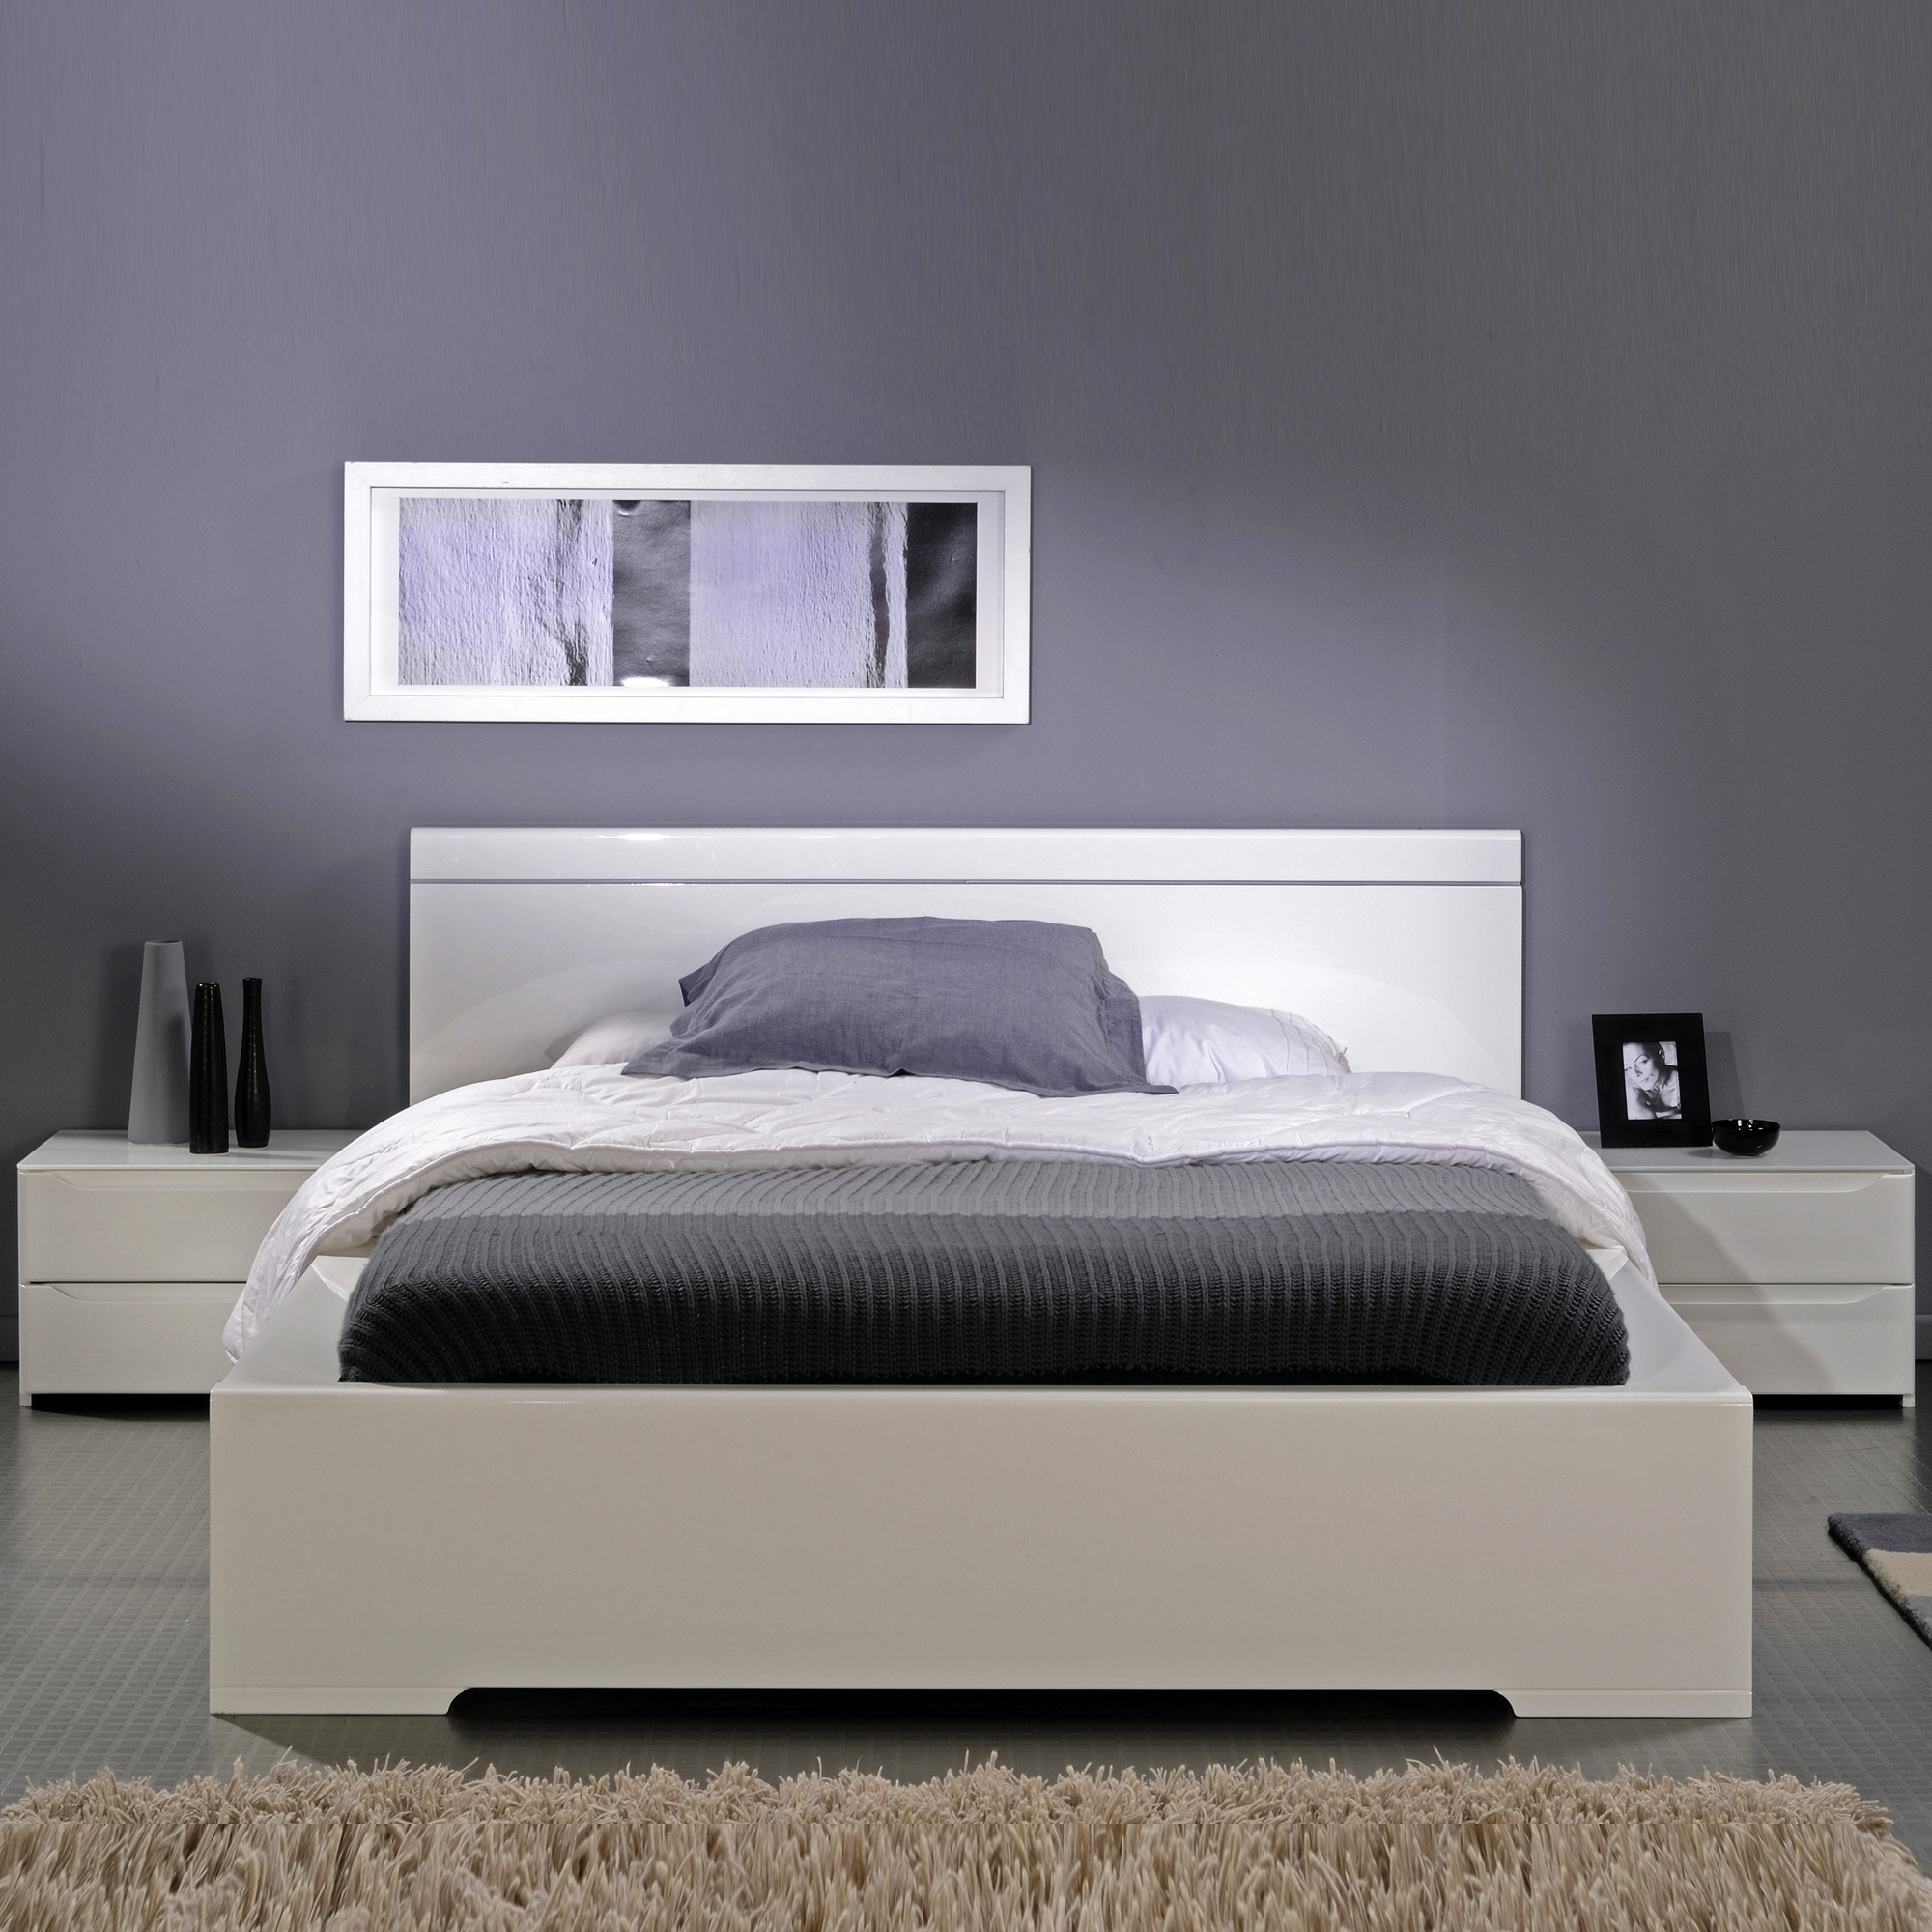 ensemble lit environnement lumineux 160 x 200 avec 2 chevets int gr s amber laqu blanc. Black Bedroom Furniture Sets. Home Design Ideas